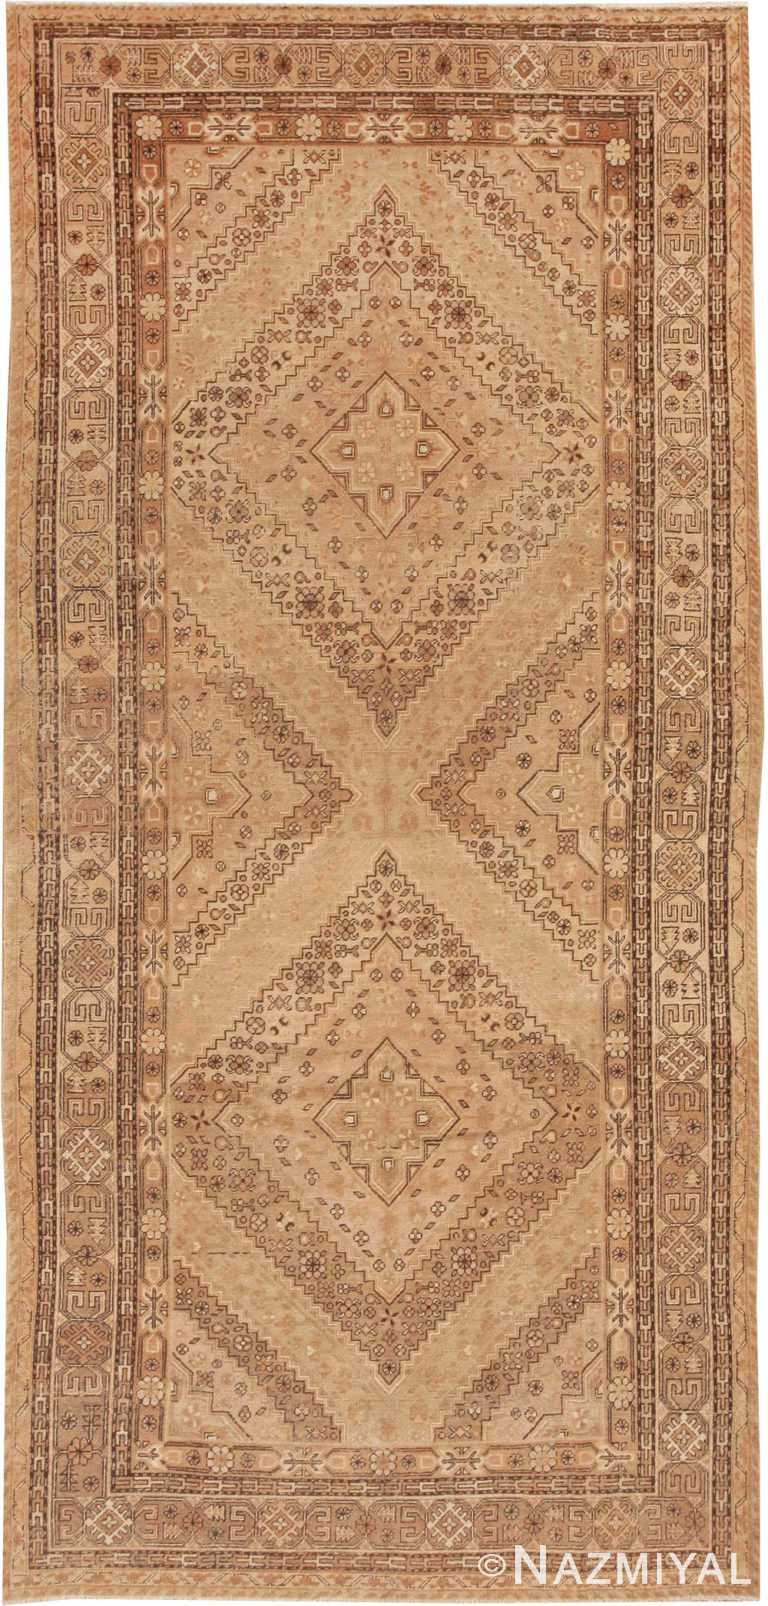 Neutral Earthtone Antique Khotan Rug #42383 by Nazmiyal Antique Rugs